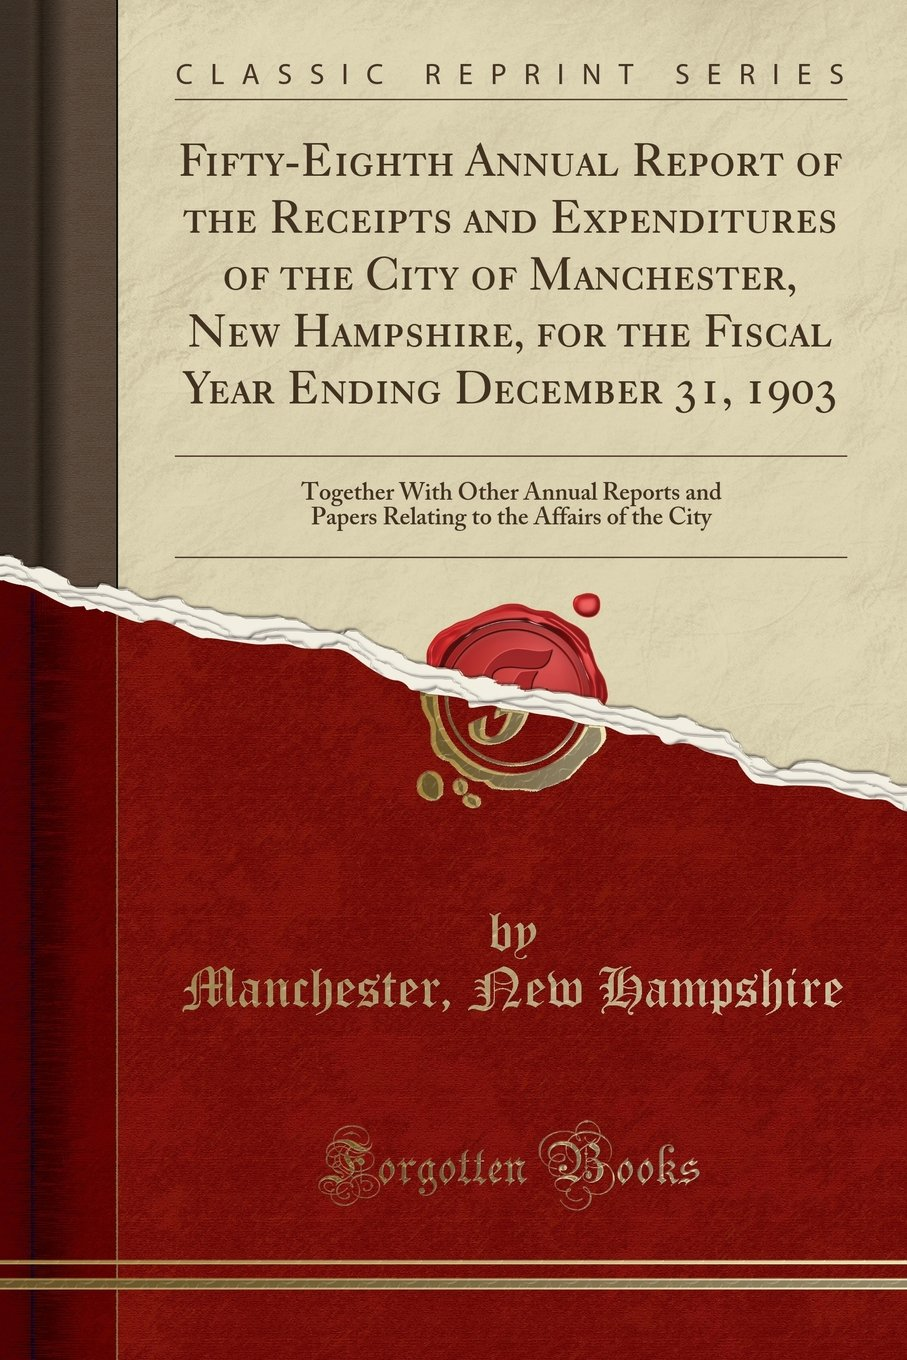 Fifty-Eighth Annual Report of the Receipts and Expenditures of the City of Manchester, New Hampshire, for the Fiscal Year Ending December 31, 1903: ... to the Affairs of the City (Classic Reprint) pdf epub